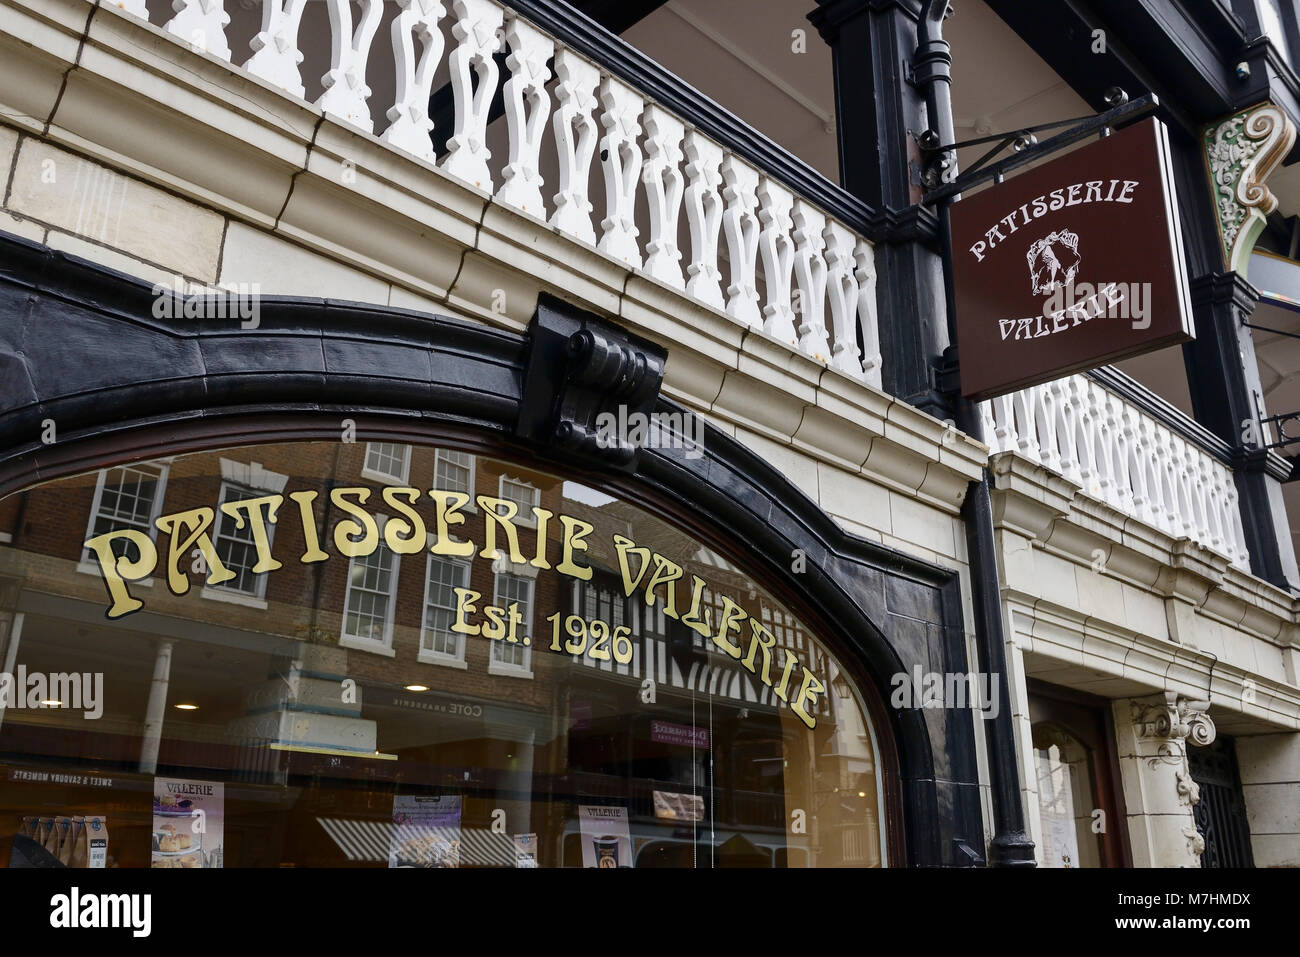 Patisserie Valerie signage in Chester city centre UK - Stock Image